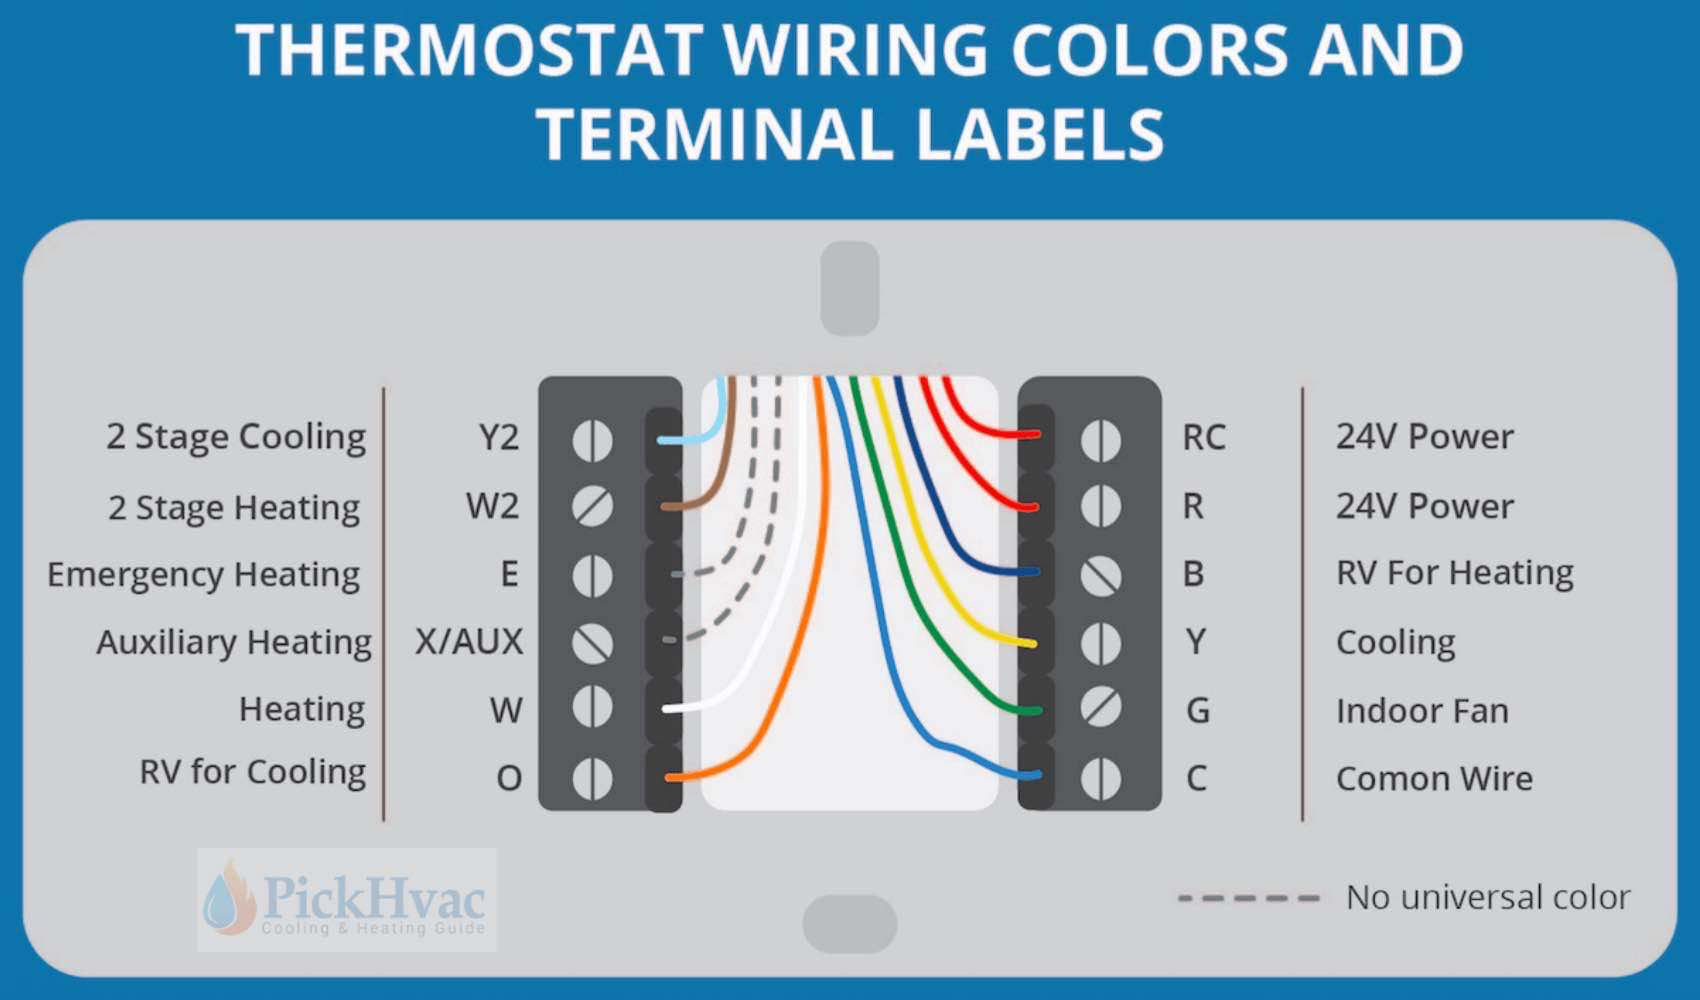 Thermostat Wiring Guide - Wiring Diagrams Click - 4 Wire Nest Wiring Diagram